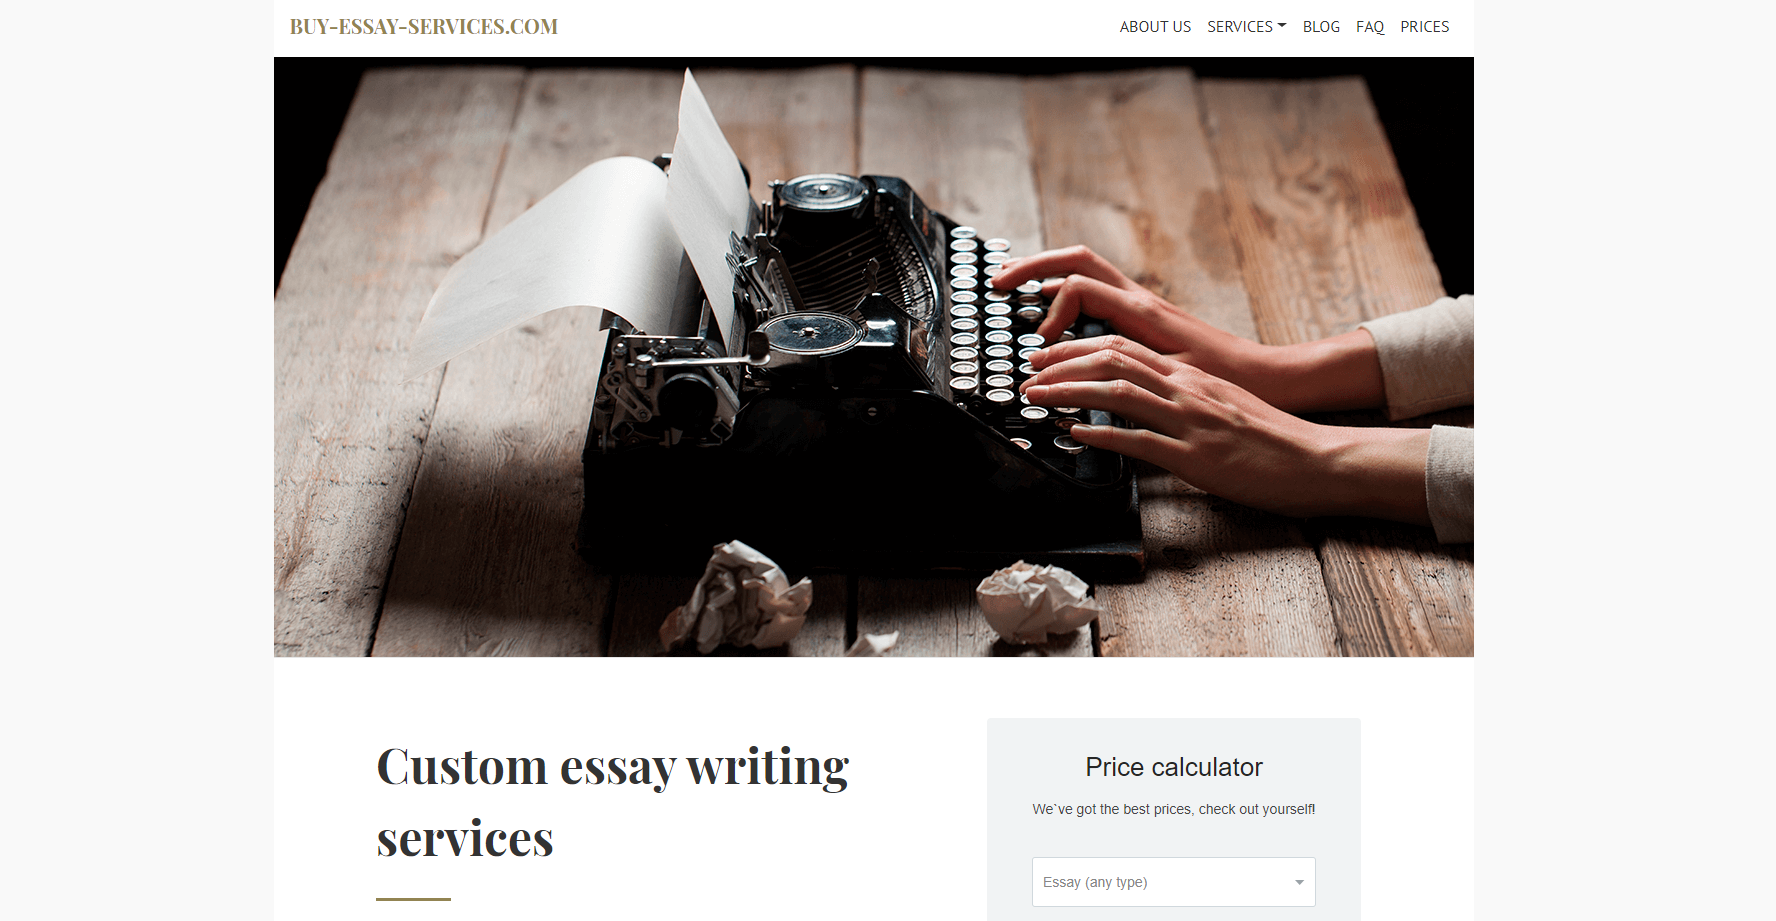 buy-essay-services - review